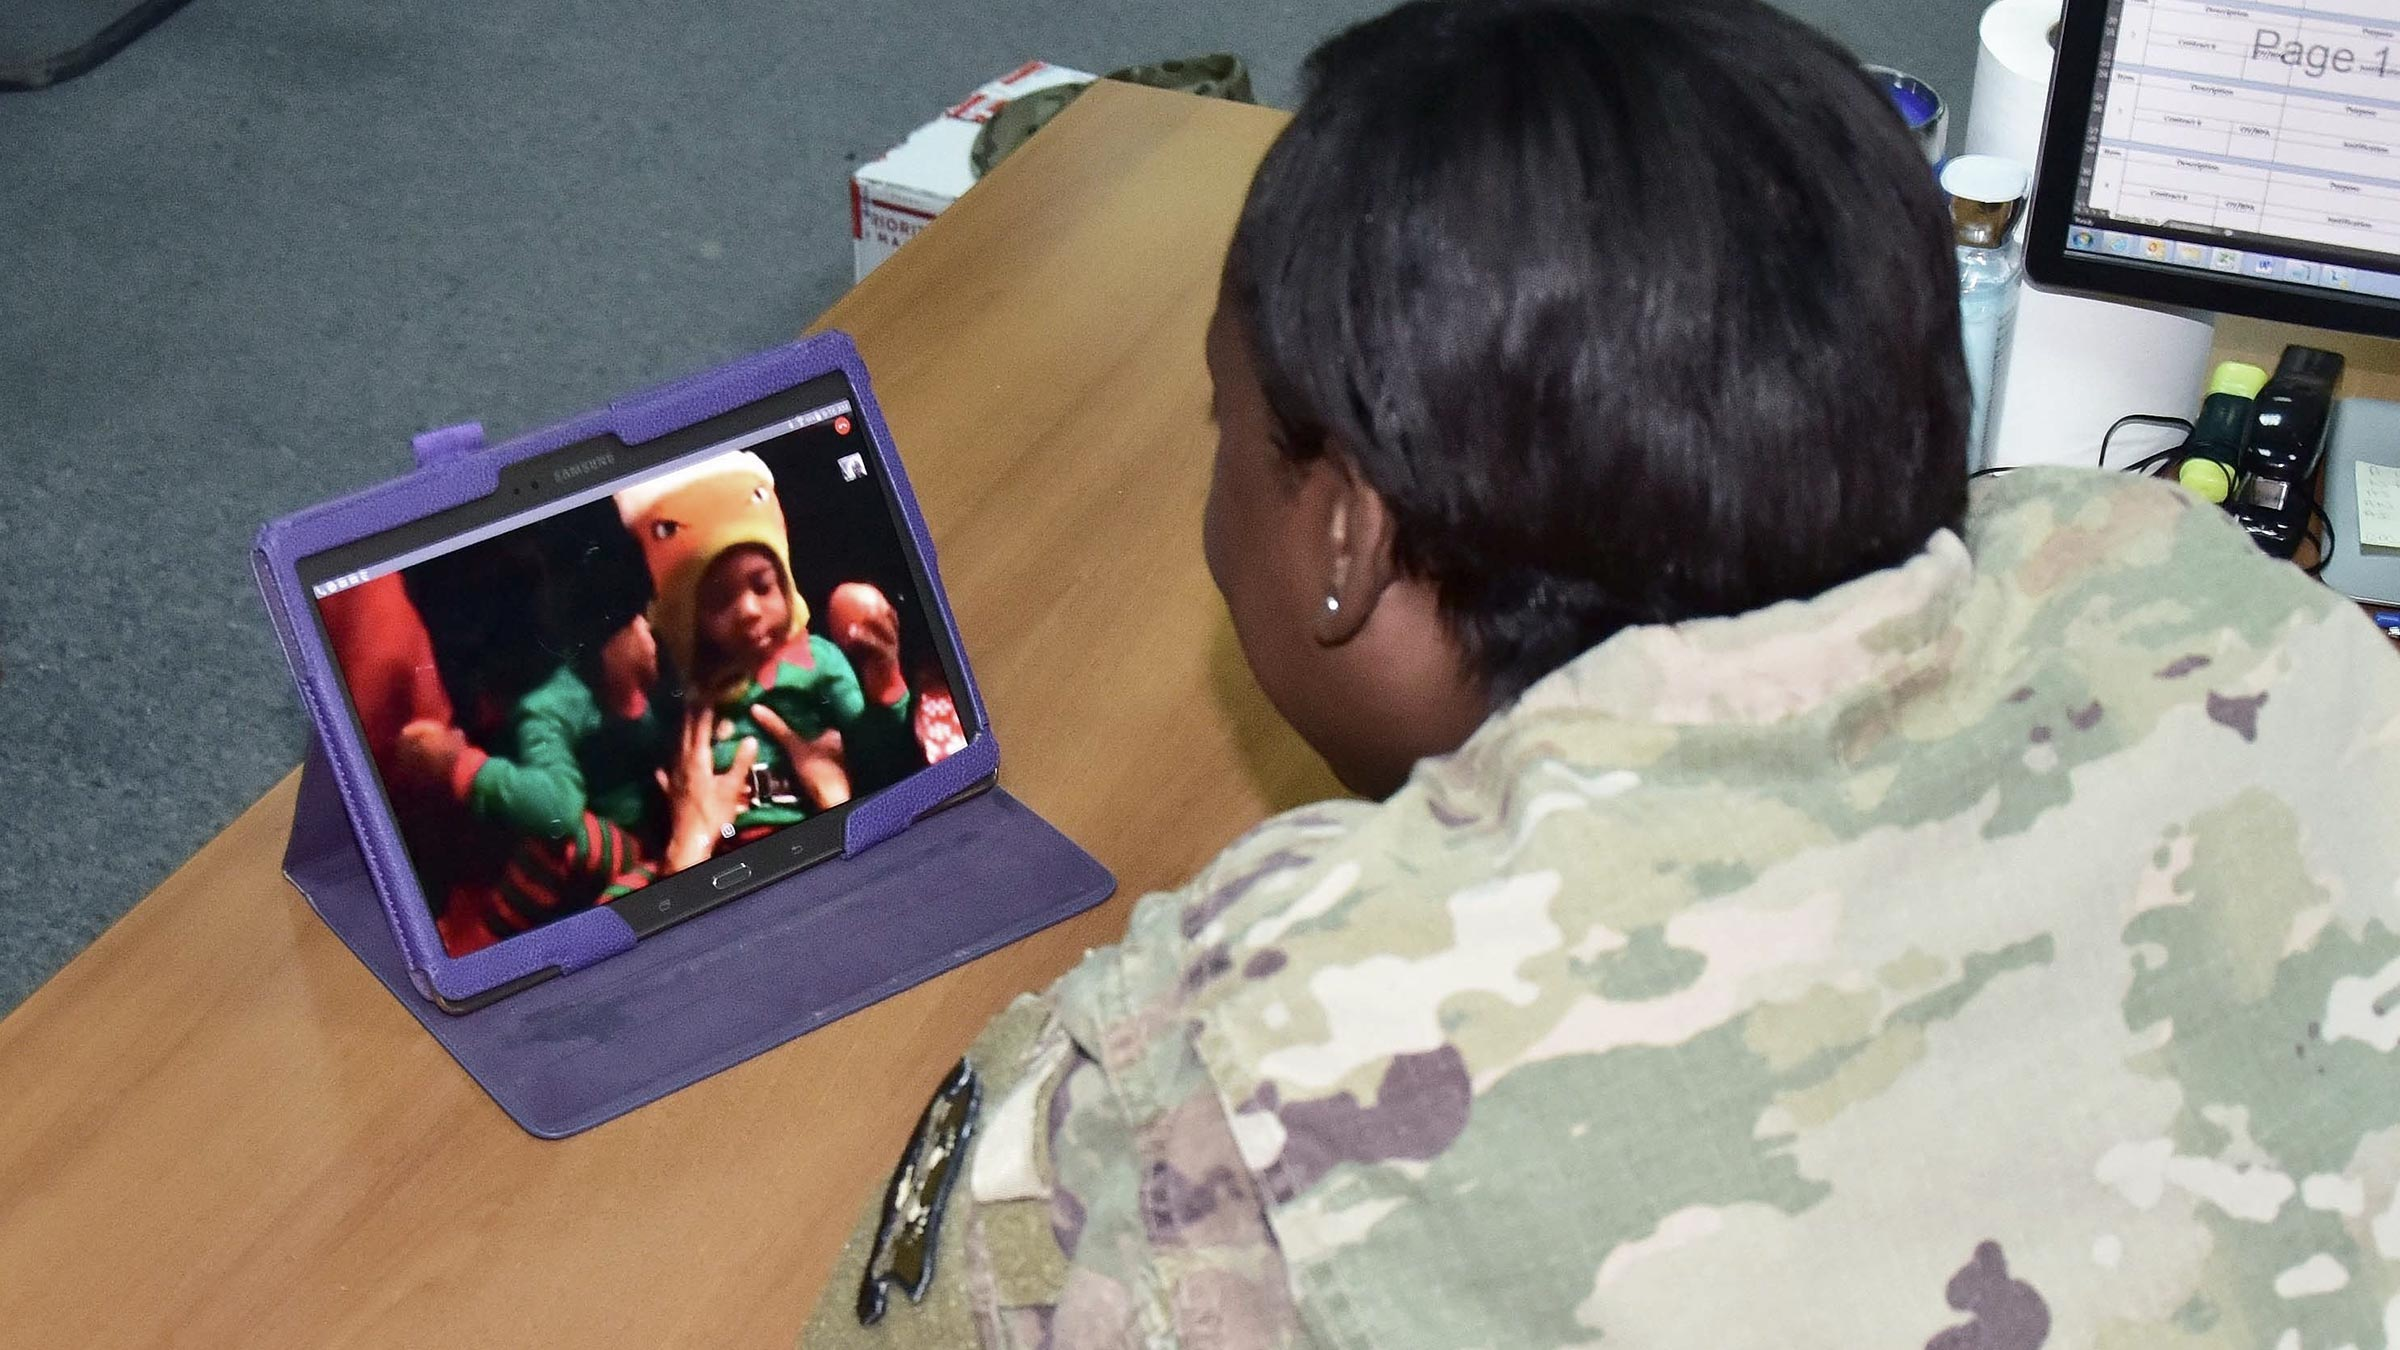 A service member watches her children open presents via video chat.